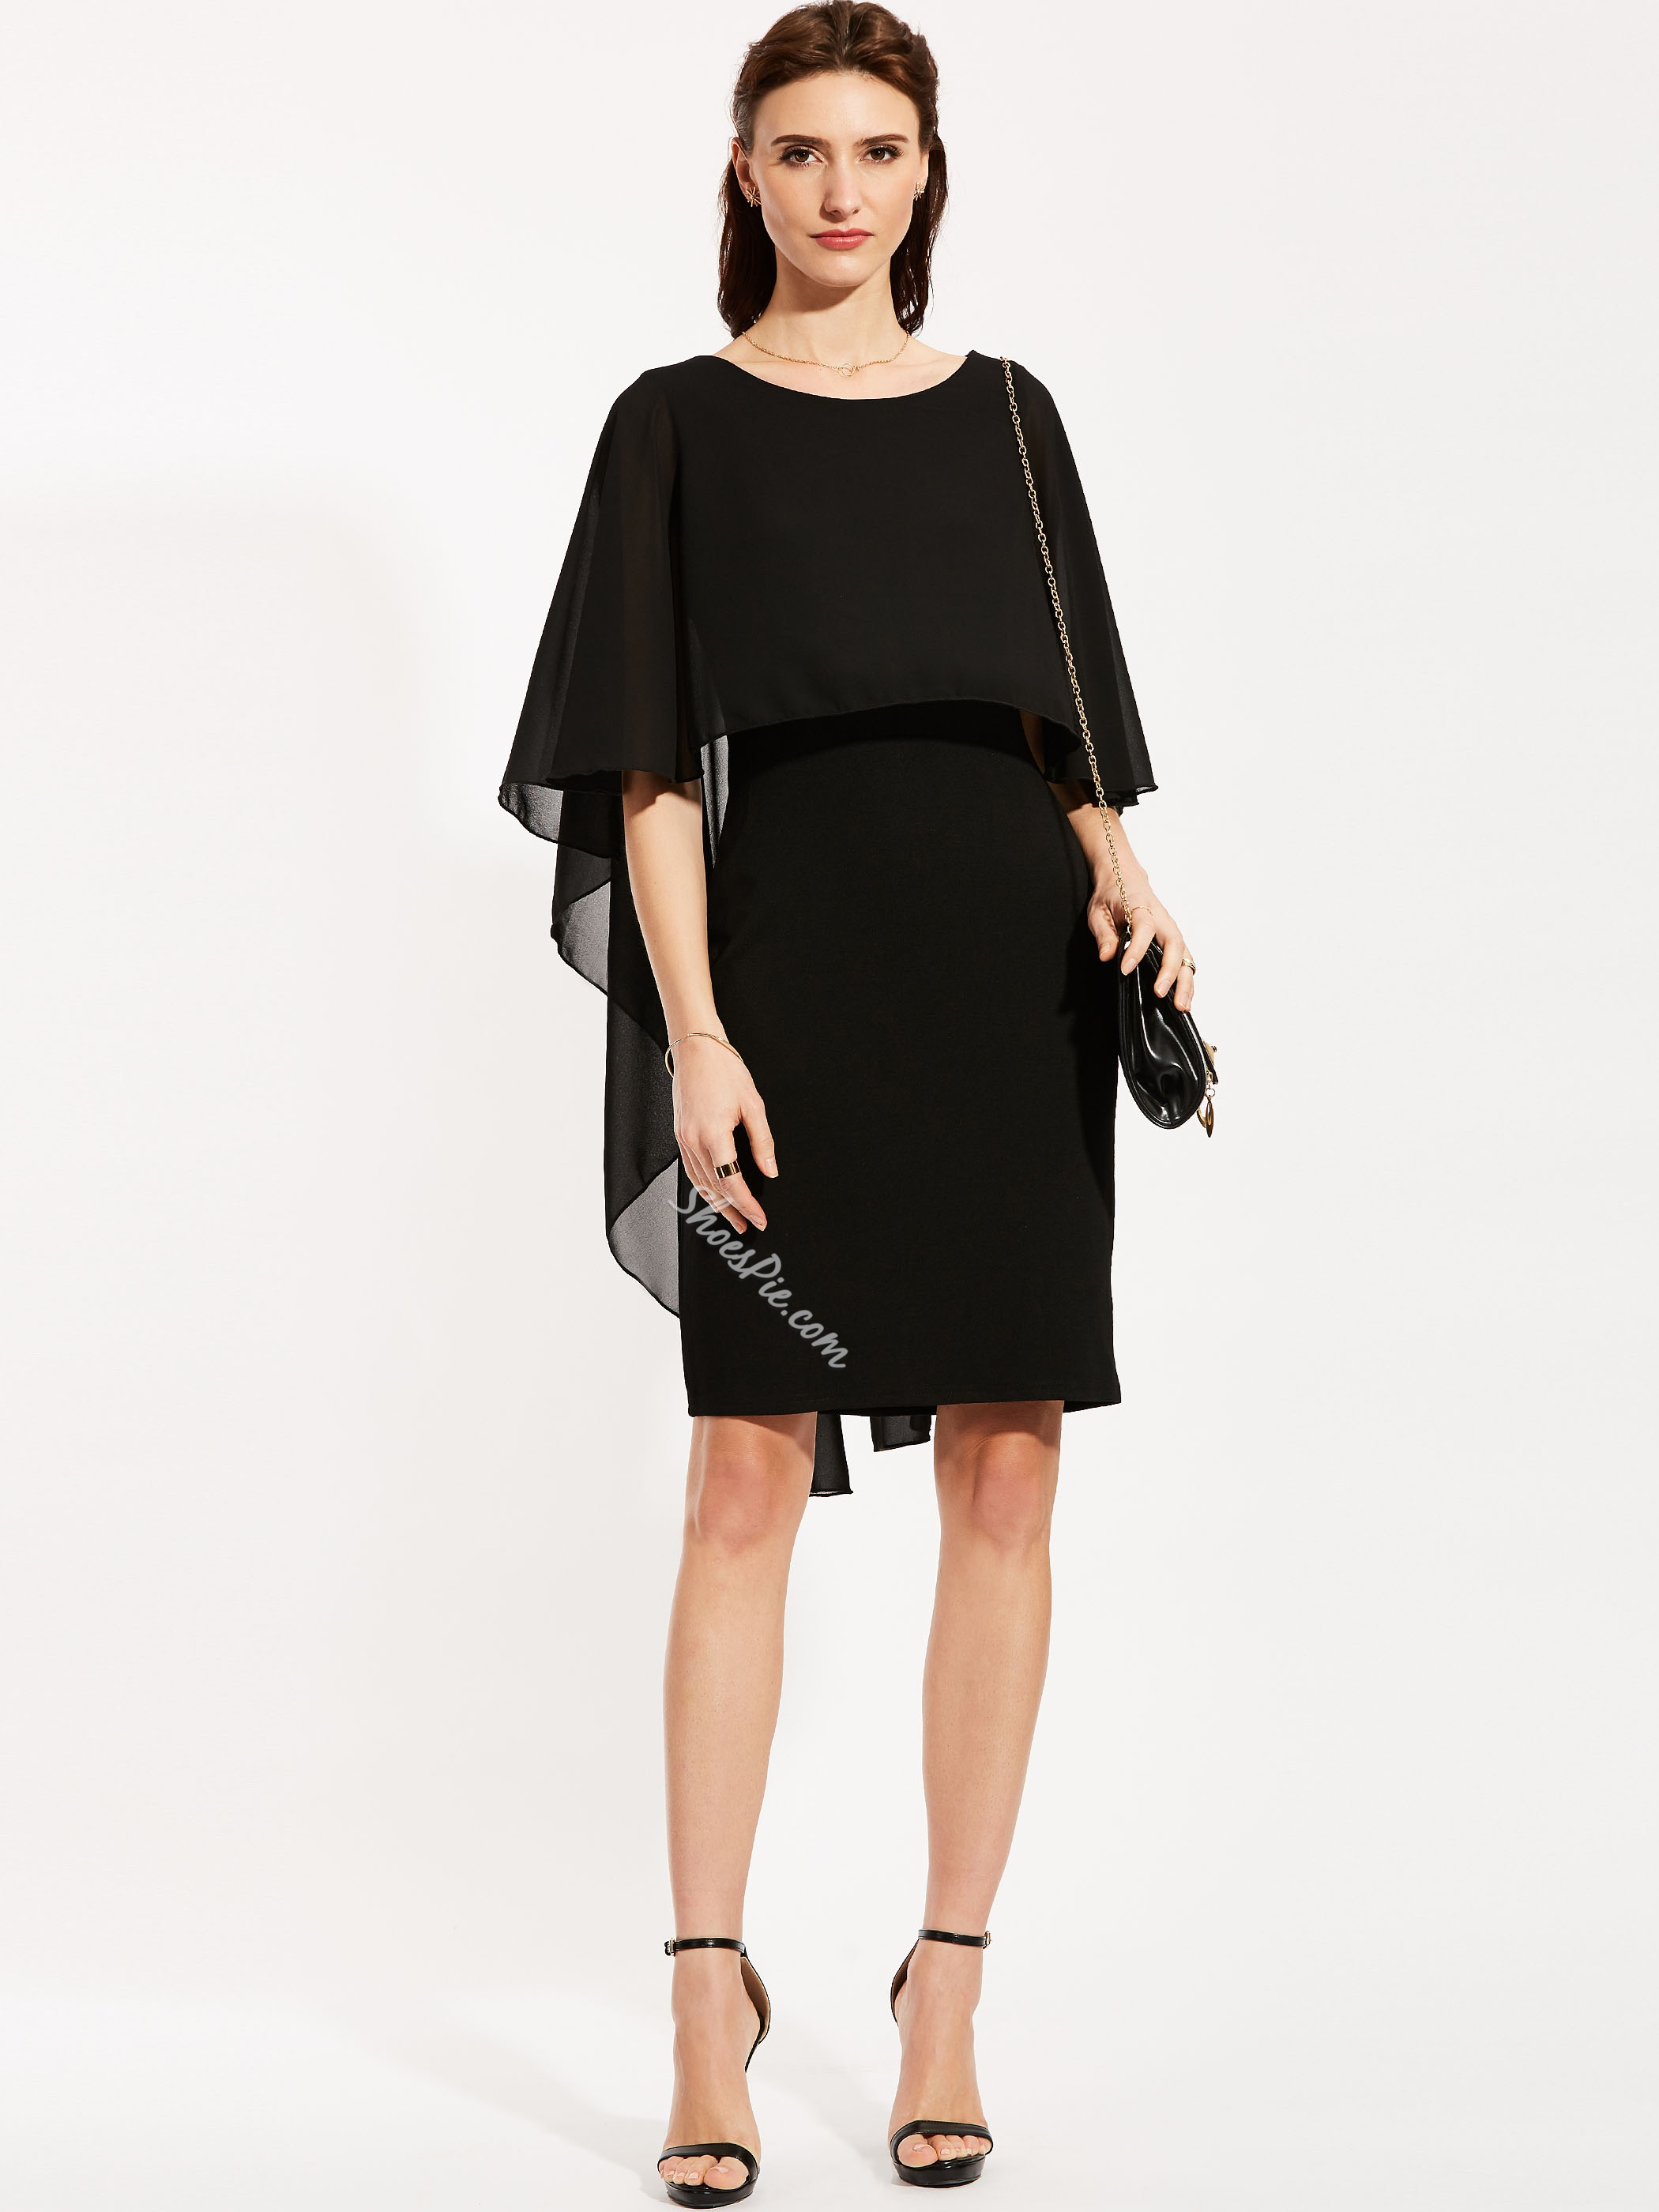 Round Neck Batwing Sleeve Pencil Dress